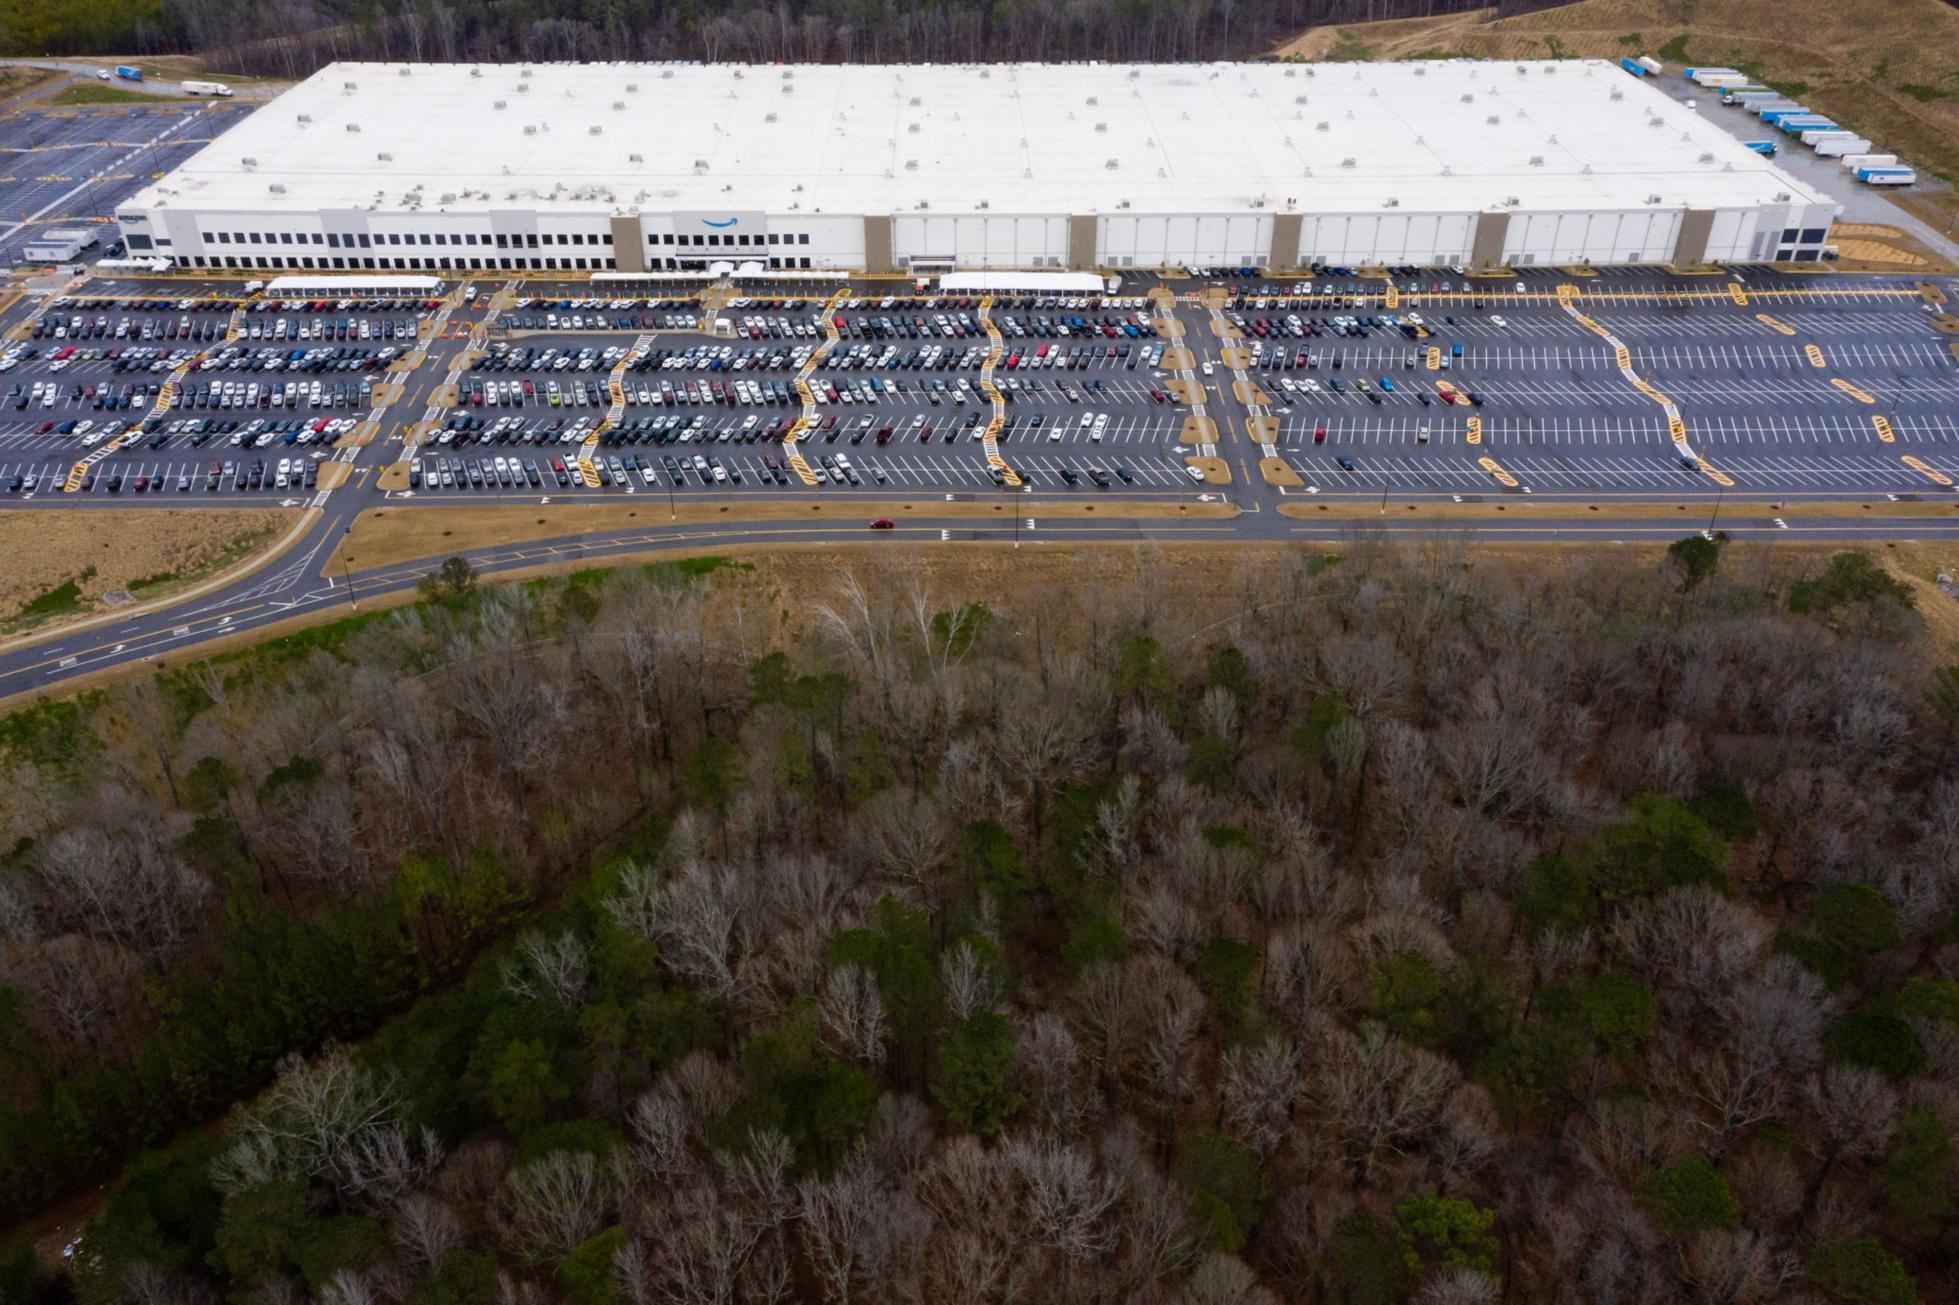 The Bessemer site, which is Amazon's first fulfillment center in Alabama, opened last March. It was heralded by local officials for bringing jobs and tax revenue, with an economic impact estimated at $202 million.